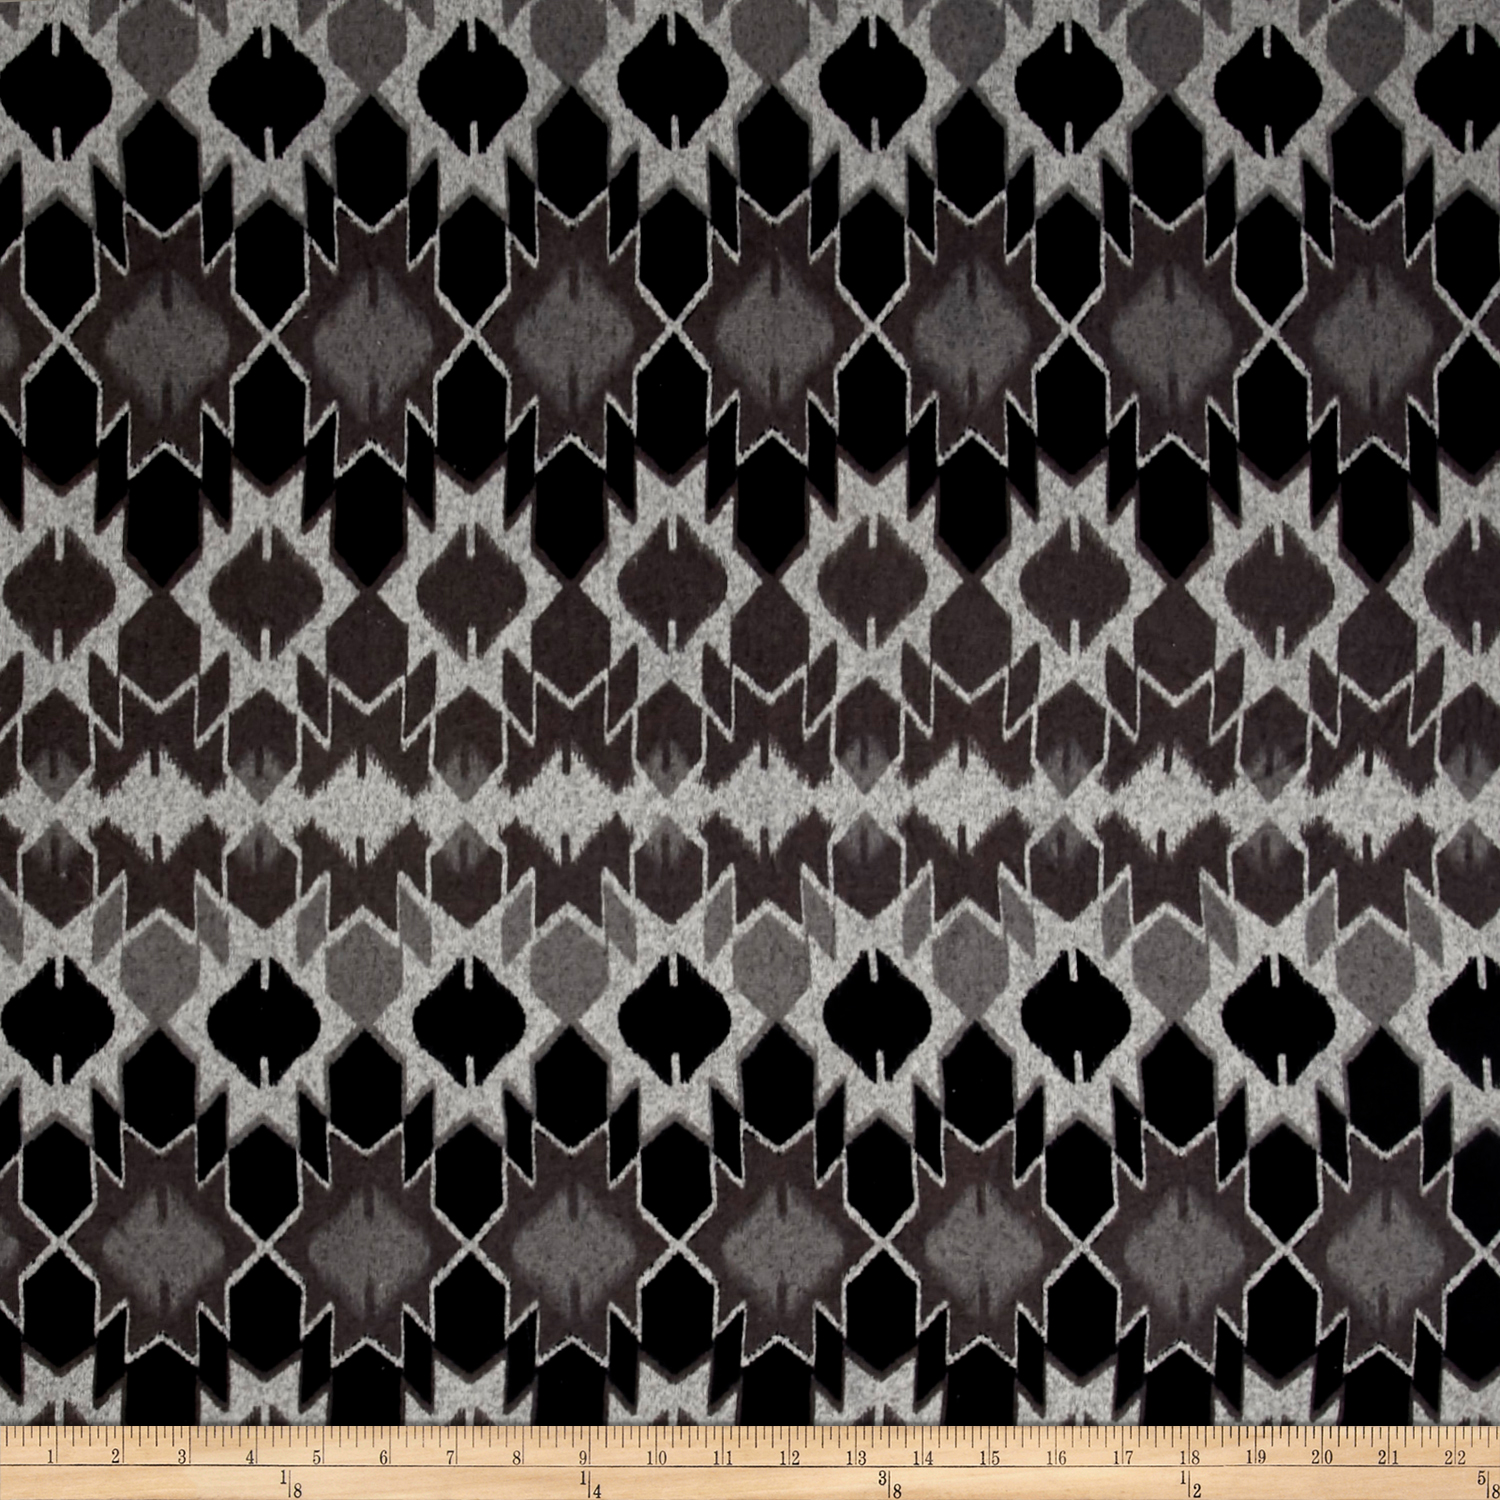 Brushed Hatchi Sweater Knit Abstract Ikat Gray/Black Fabric 0492682